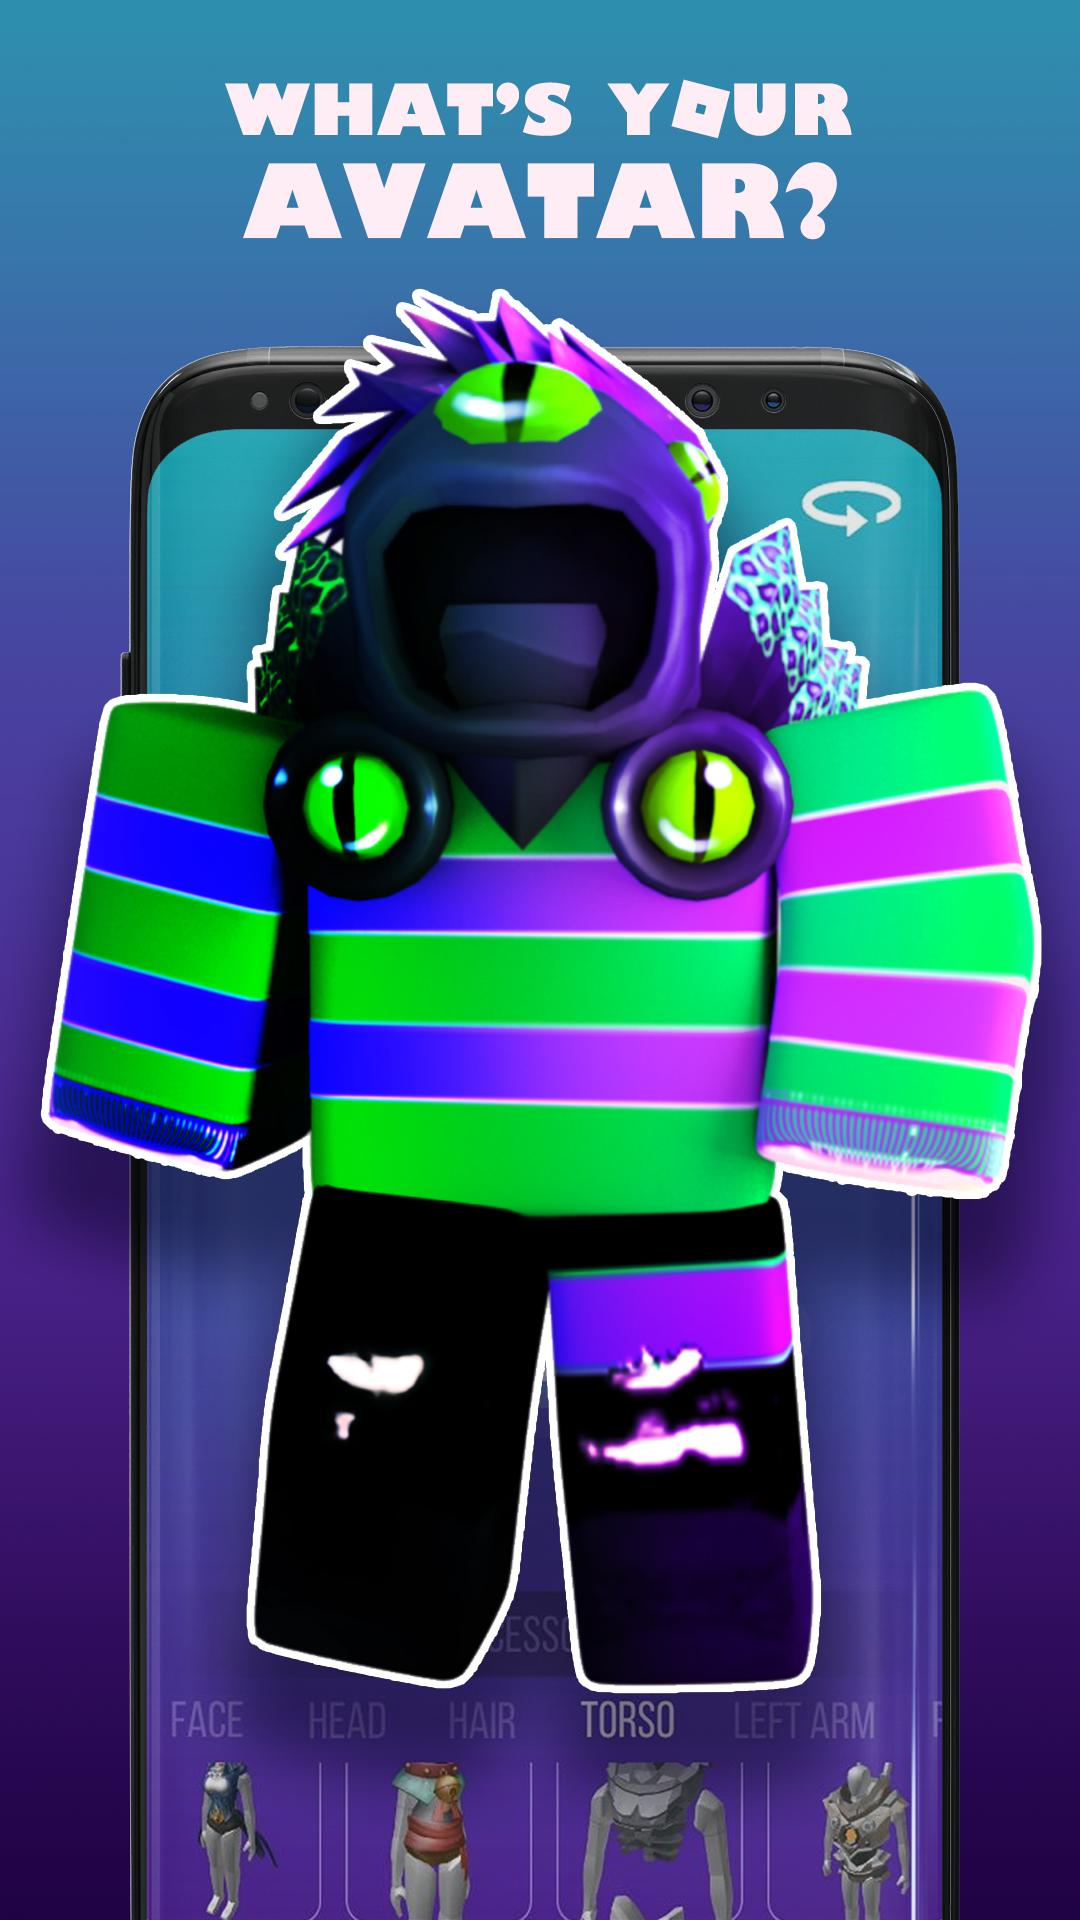 Roblox Face Maker Free Avatars Maker For Roblox Platform For Android Apk Download